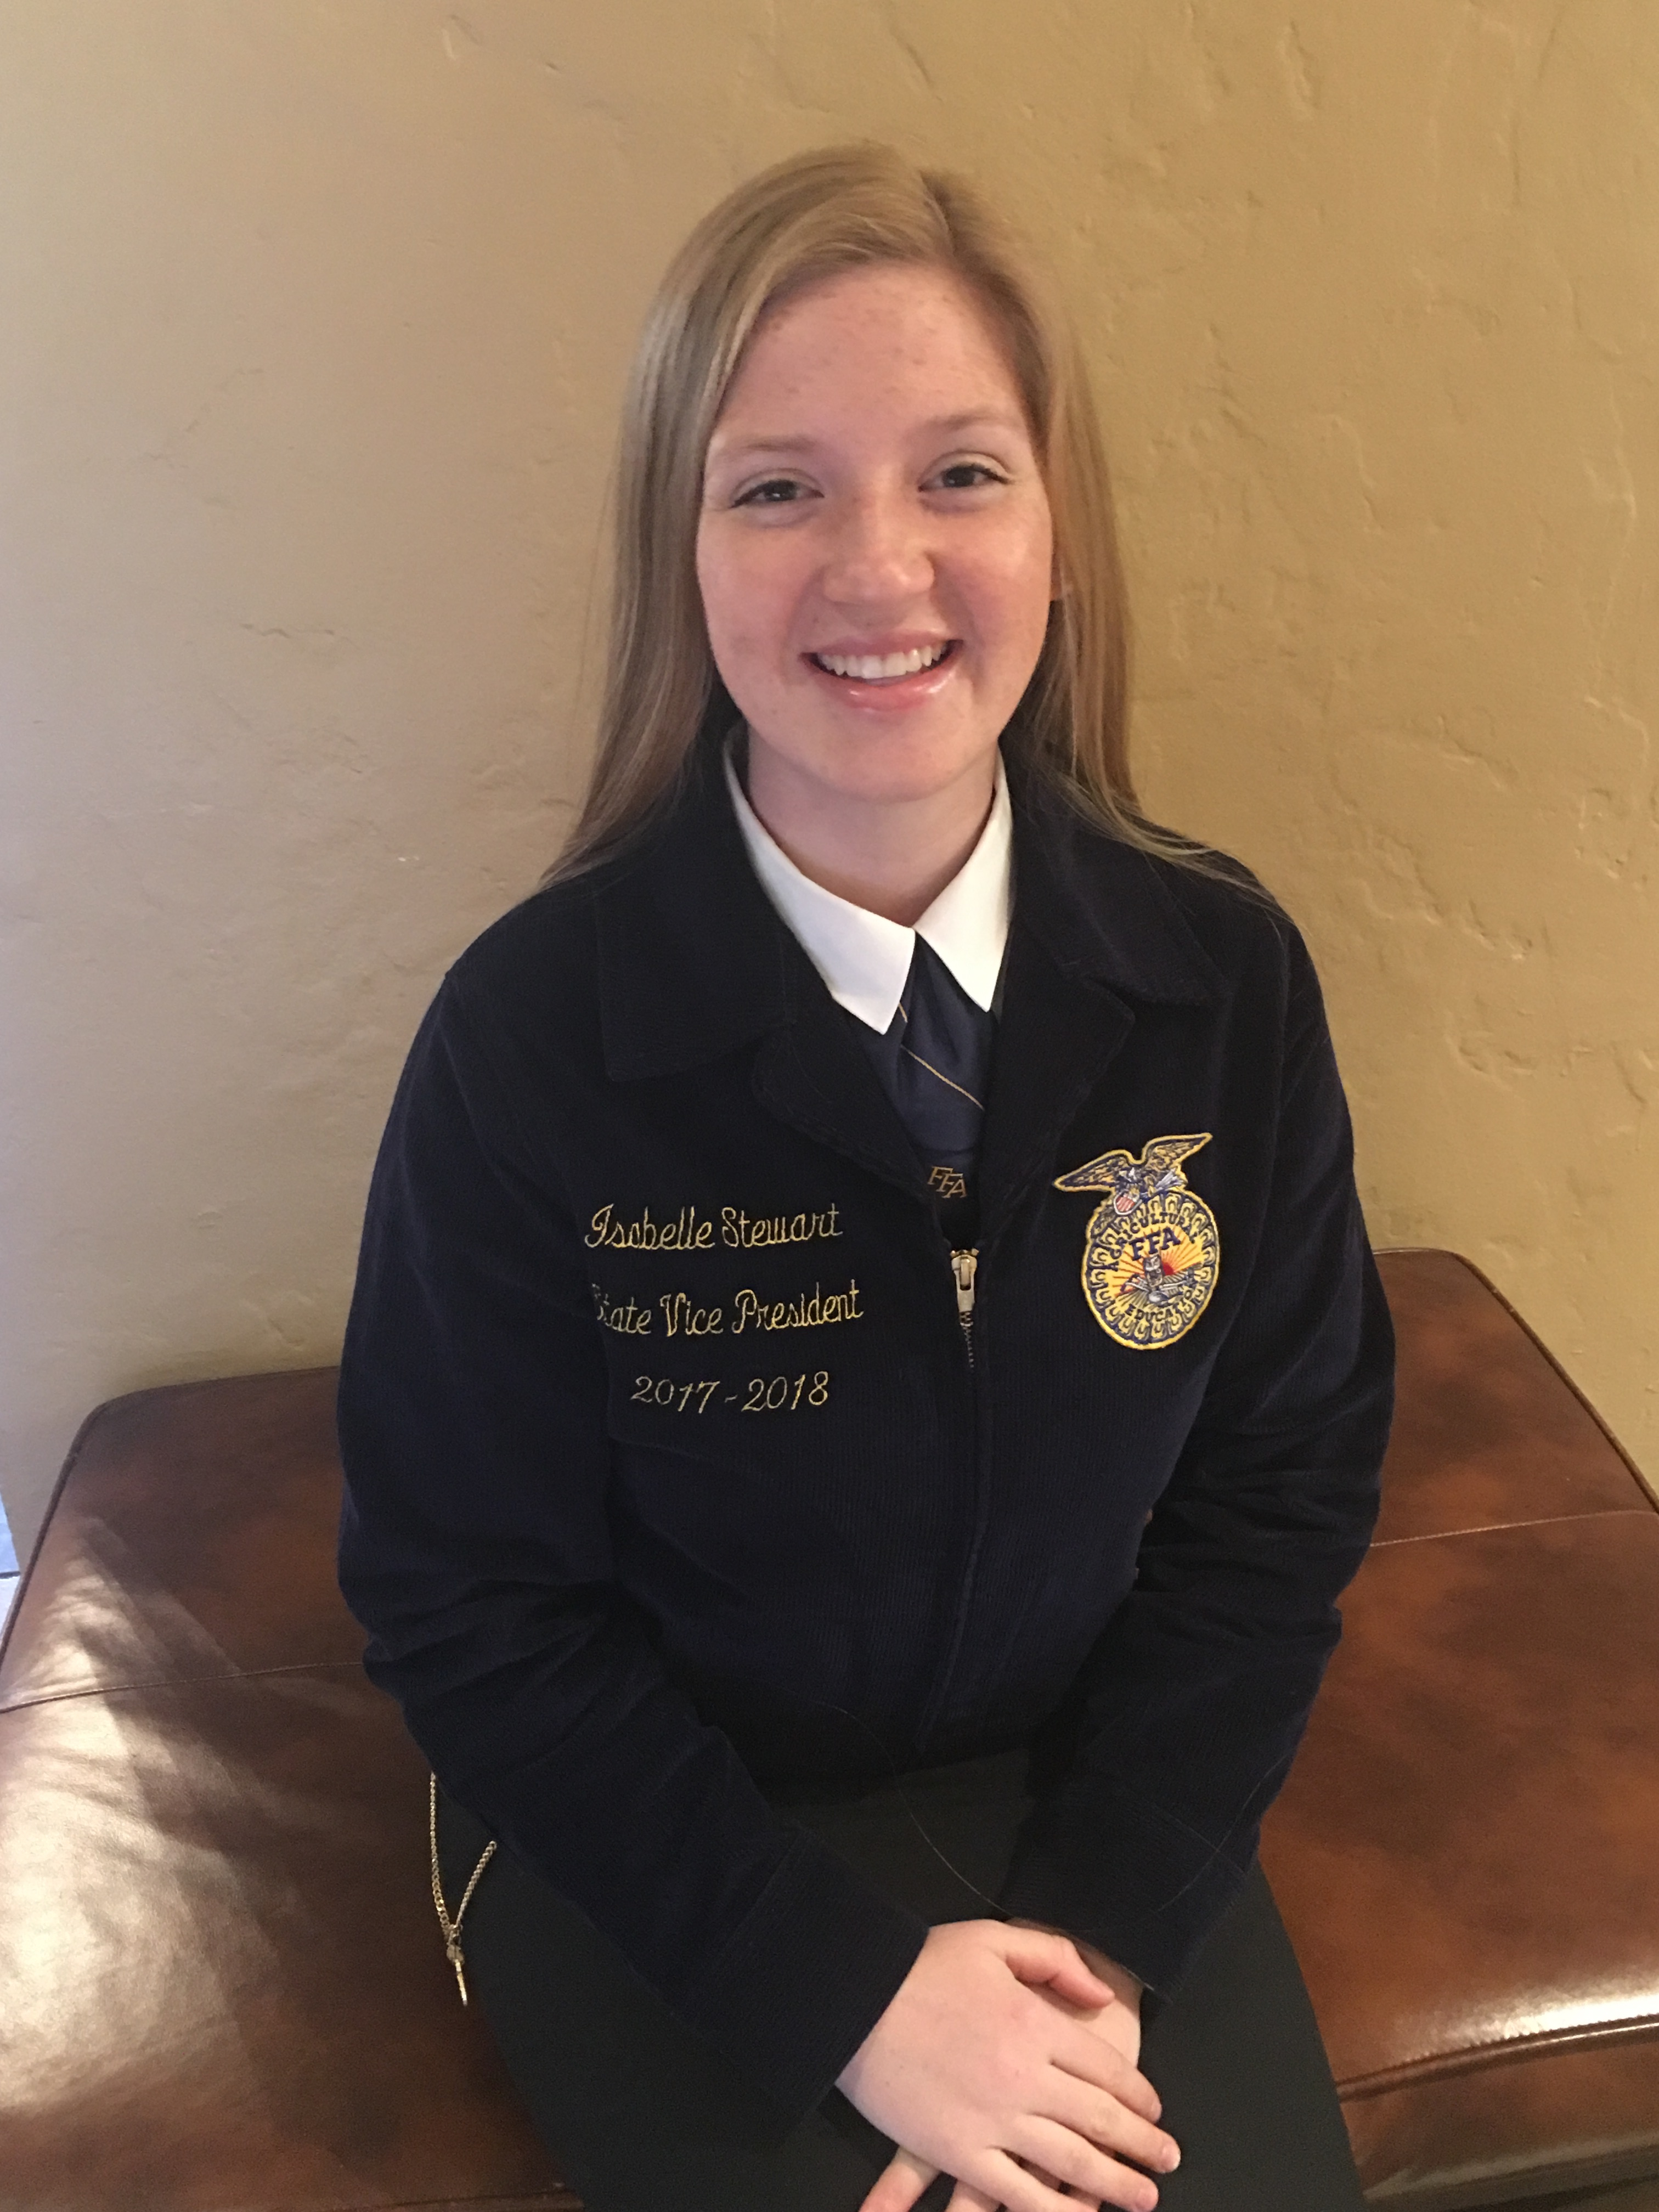 Meet Your 2017-18 State Officer: Isabelle Stewart